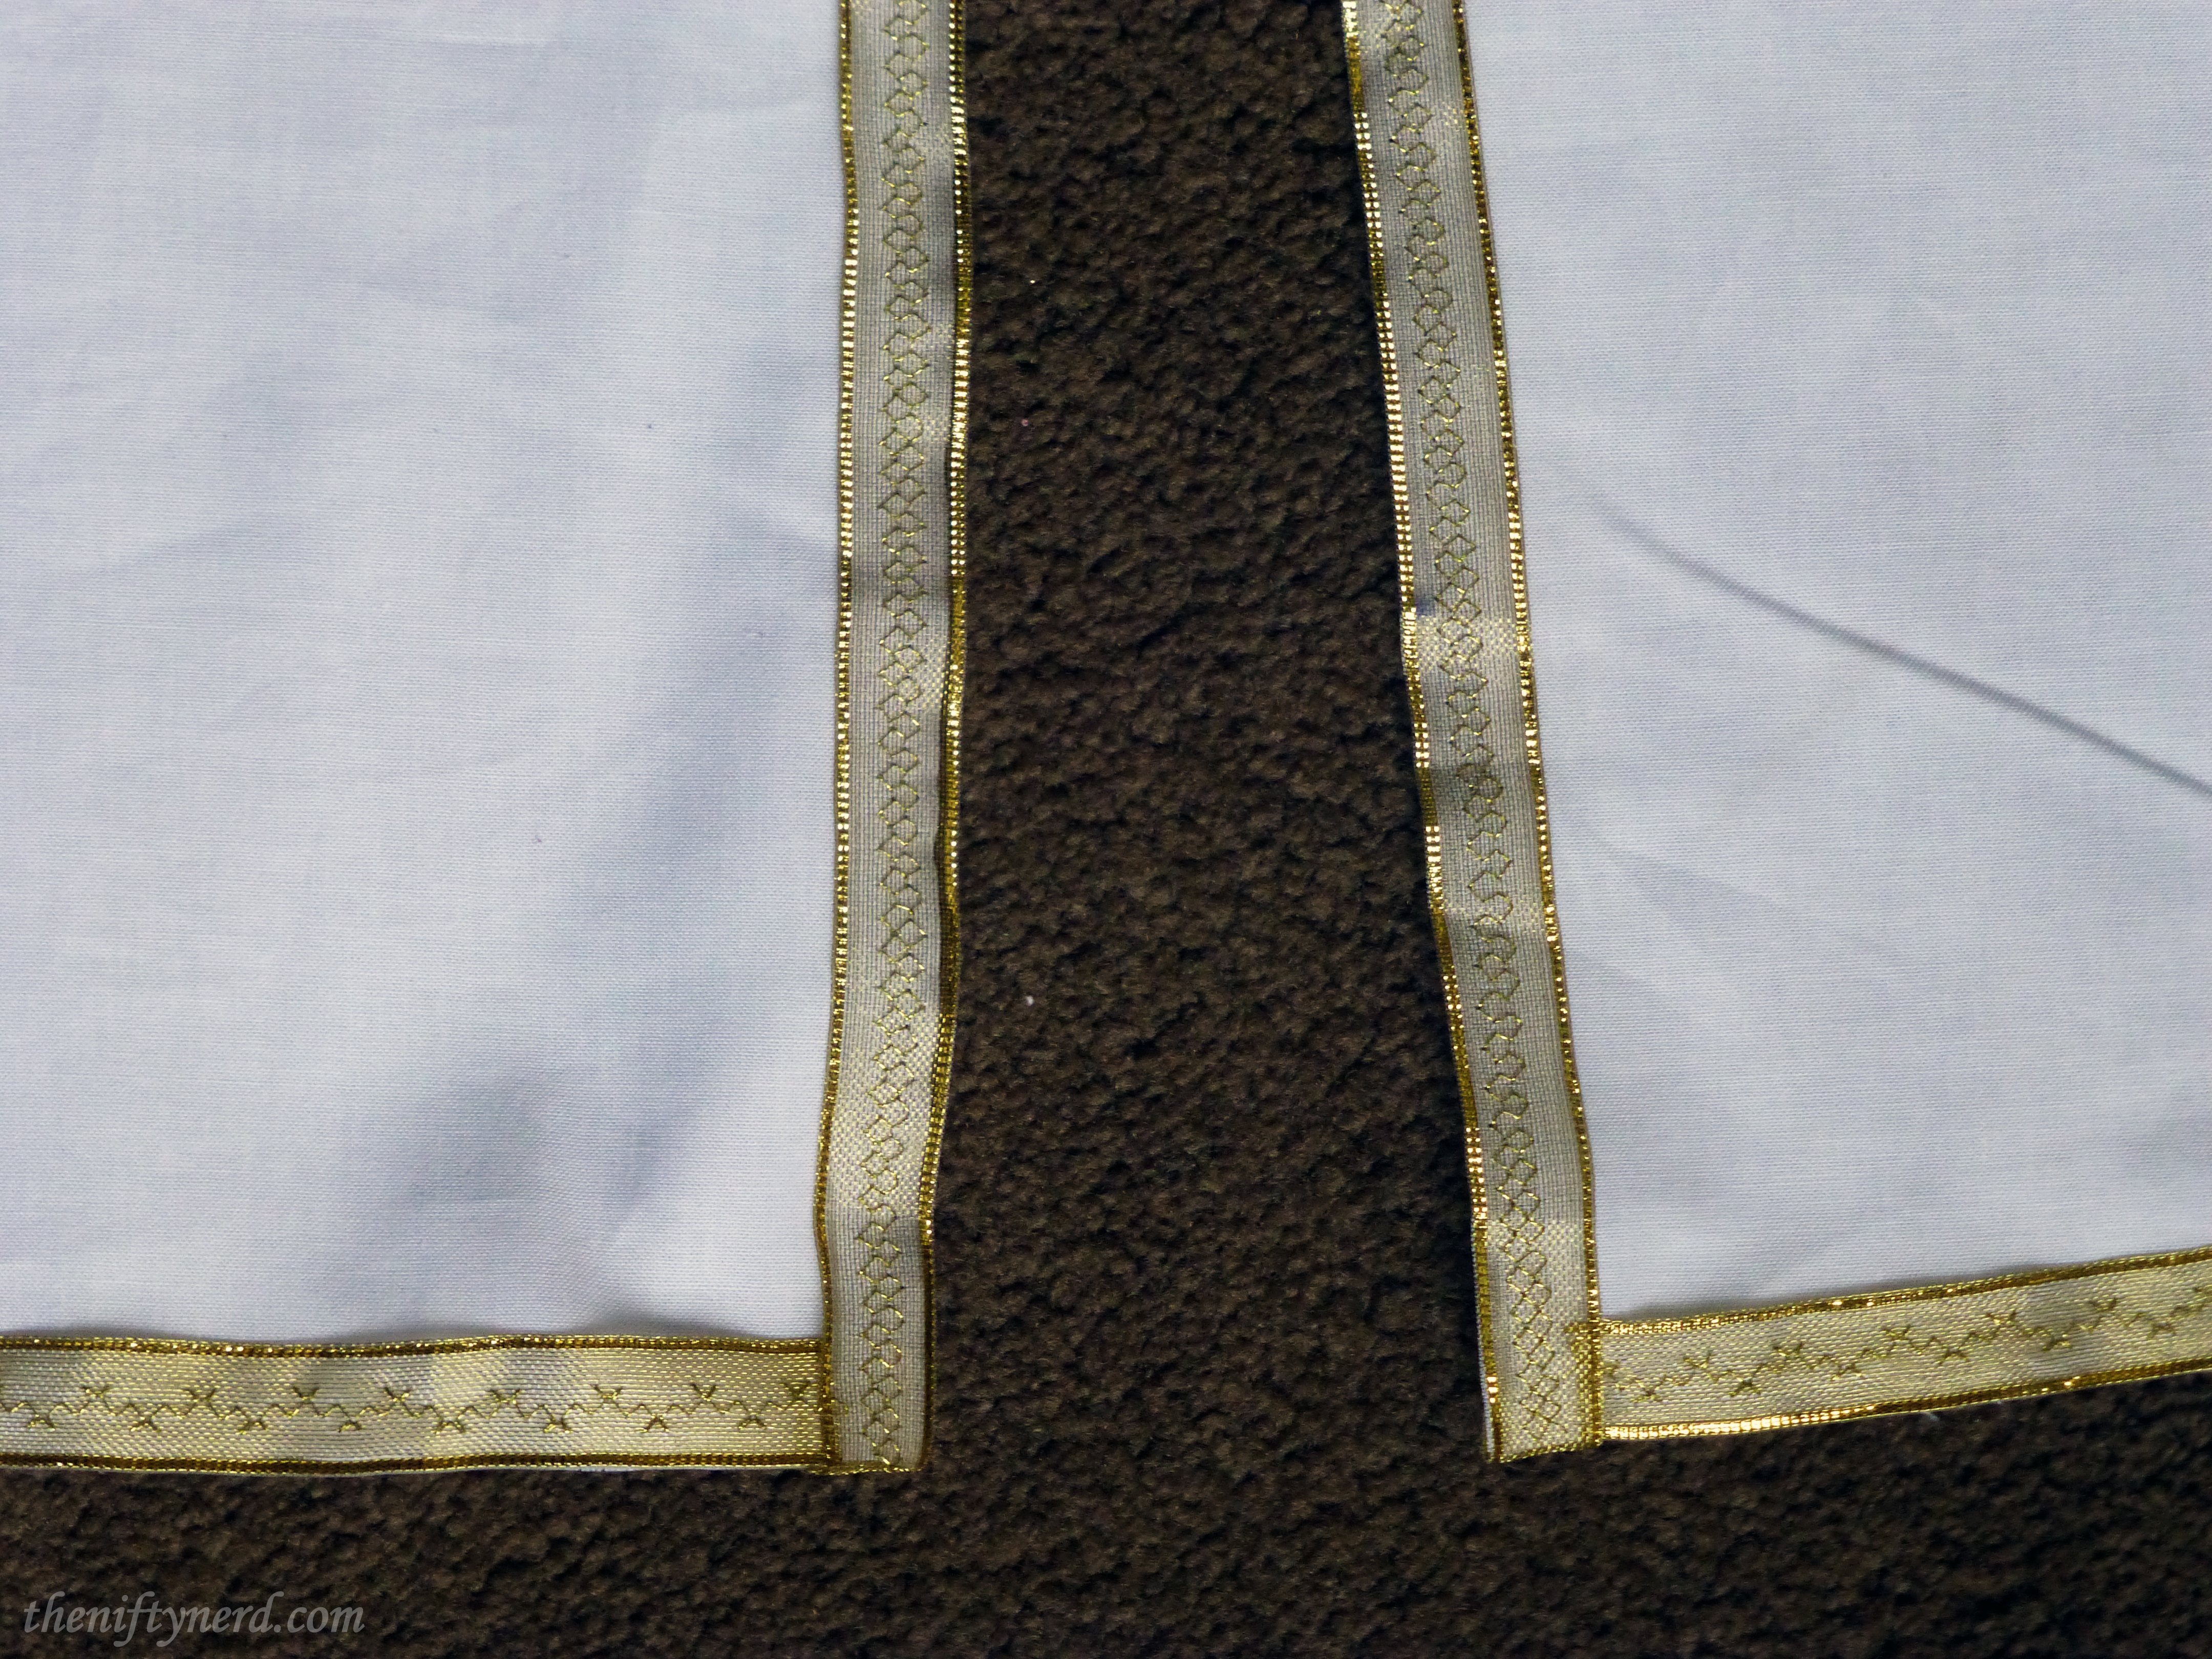 trim on King Arthur's tunic